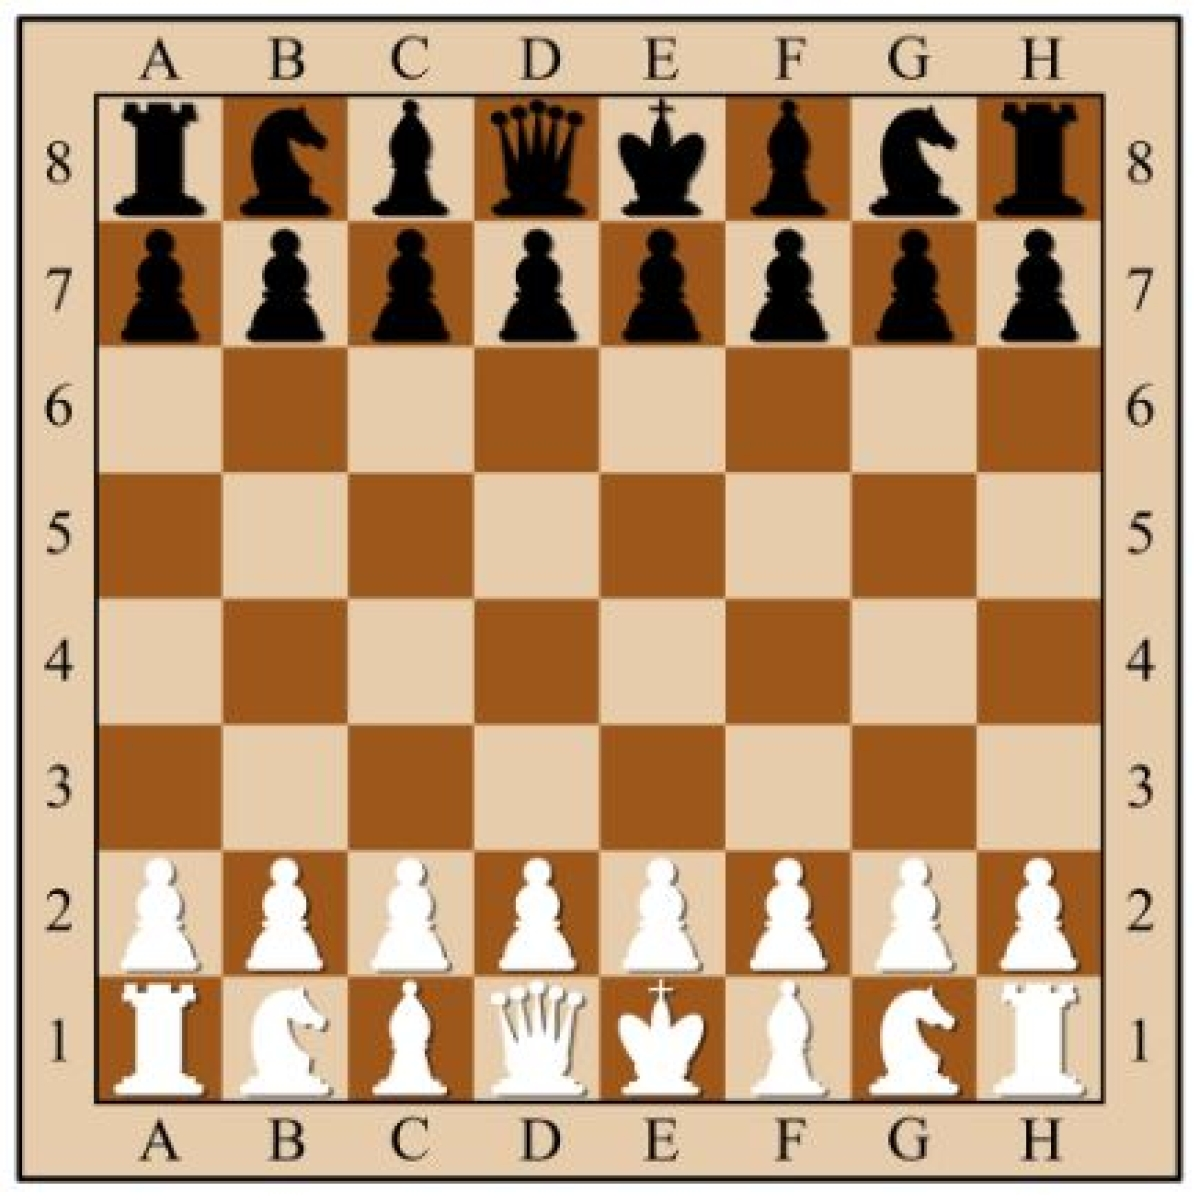 Chess on board, others struggle